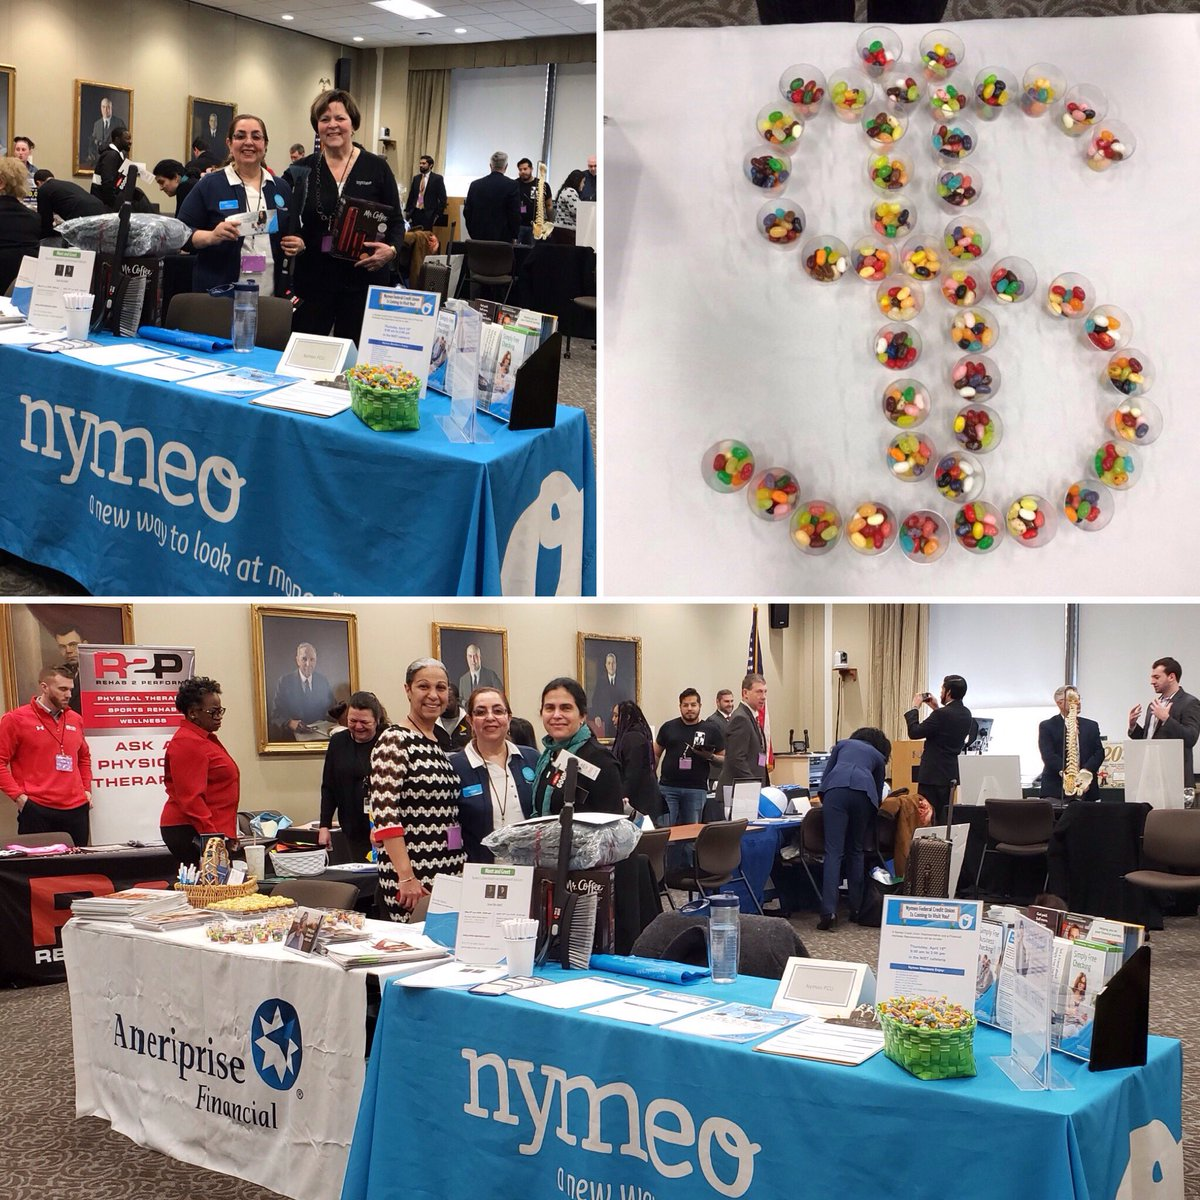 #tbt Last week, Nymeo staff and Nymeo's new Financial Advisors were at the SEBA Winter Expo at NIST! We enjoyed seeing everyone who stopped by at our tables! #creditunion #money #nymeo #NIST #finances #financialfitness #financialwellbeing #financialgoals #maryland #WinterExpo https://t.co/yelRB7KCTJ